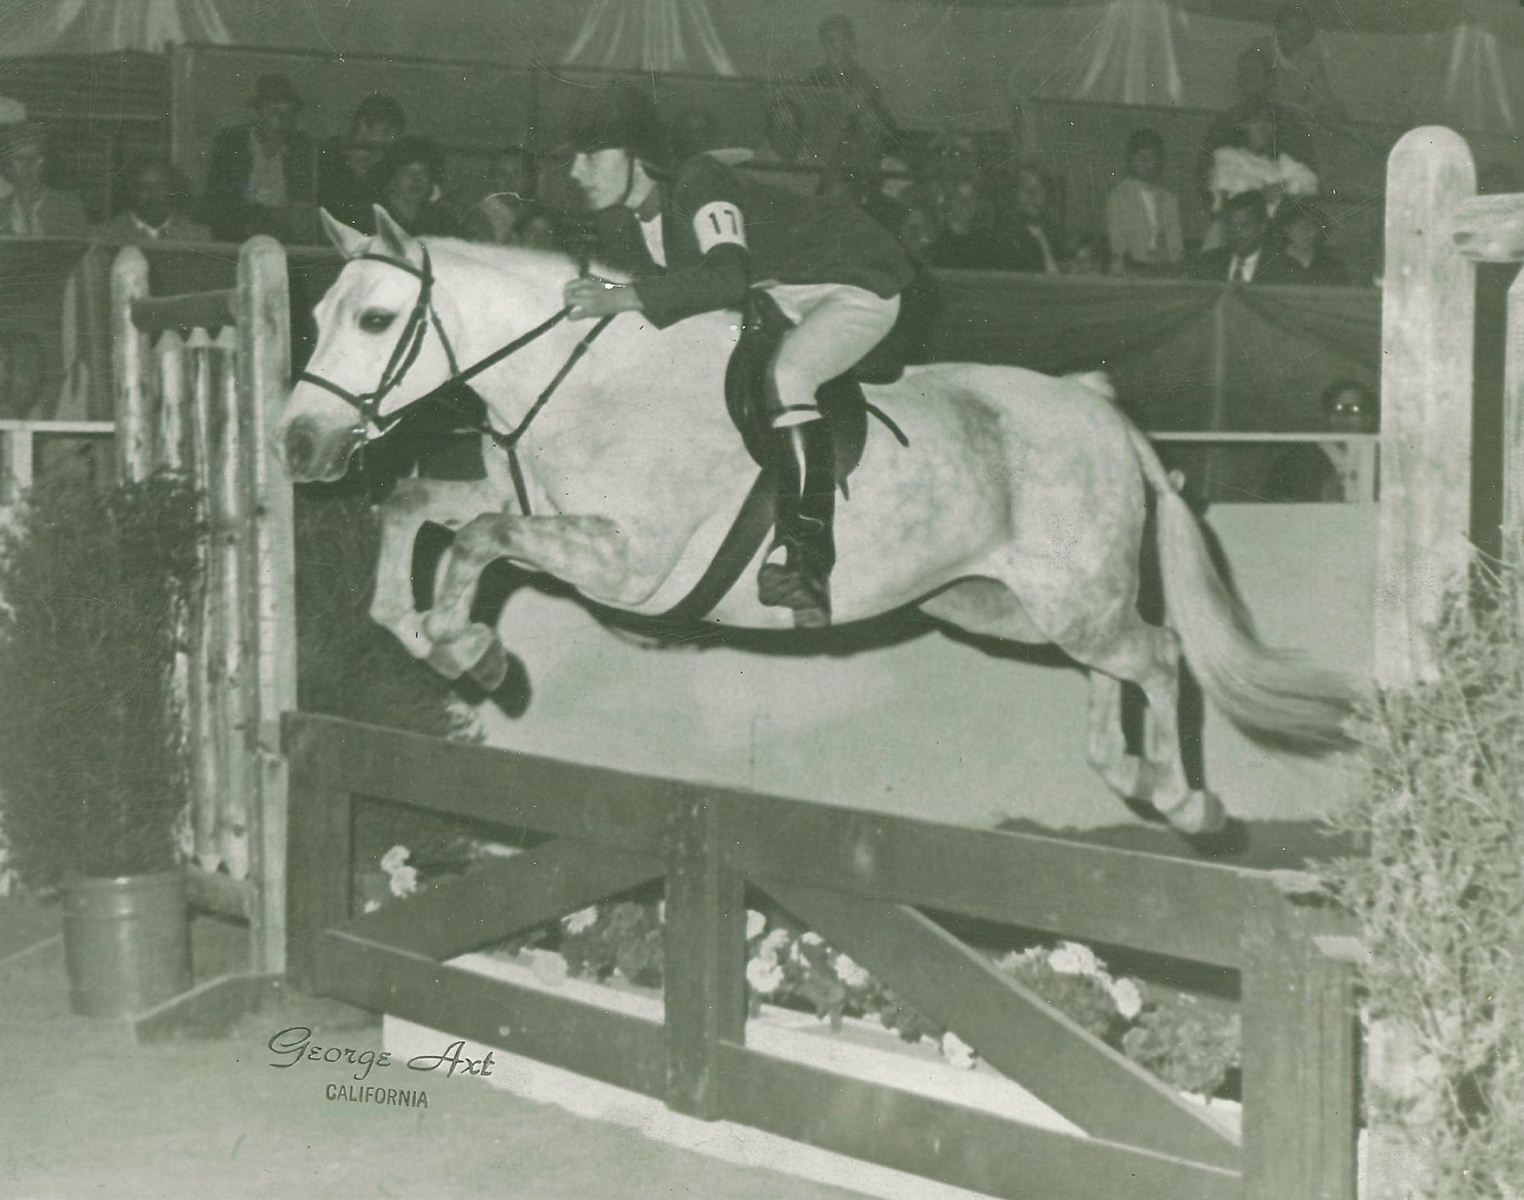 "Nancy Baroody, six-time Horse of the Year Champion in the Pony Divisions, says, ""USEF is to be highly commended for their action. We need positive role models for our young riders and allowing such a person's presence at Pony Finals, and partaking of the festivities surrounding the Wheeler Museum certainly does not meet the standards of good conduct."""